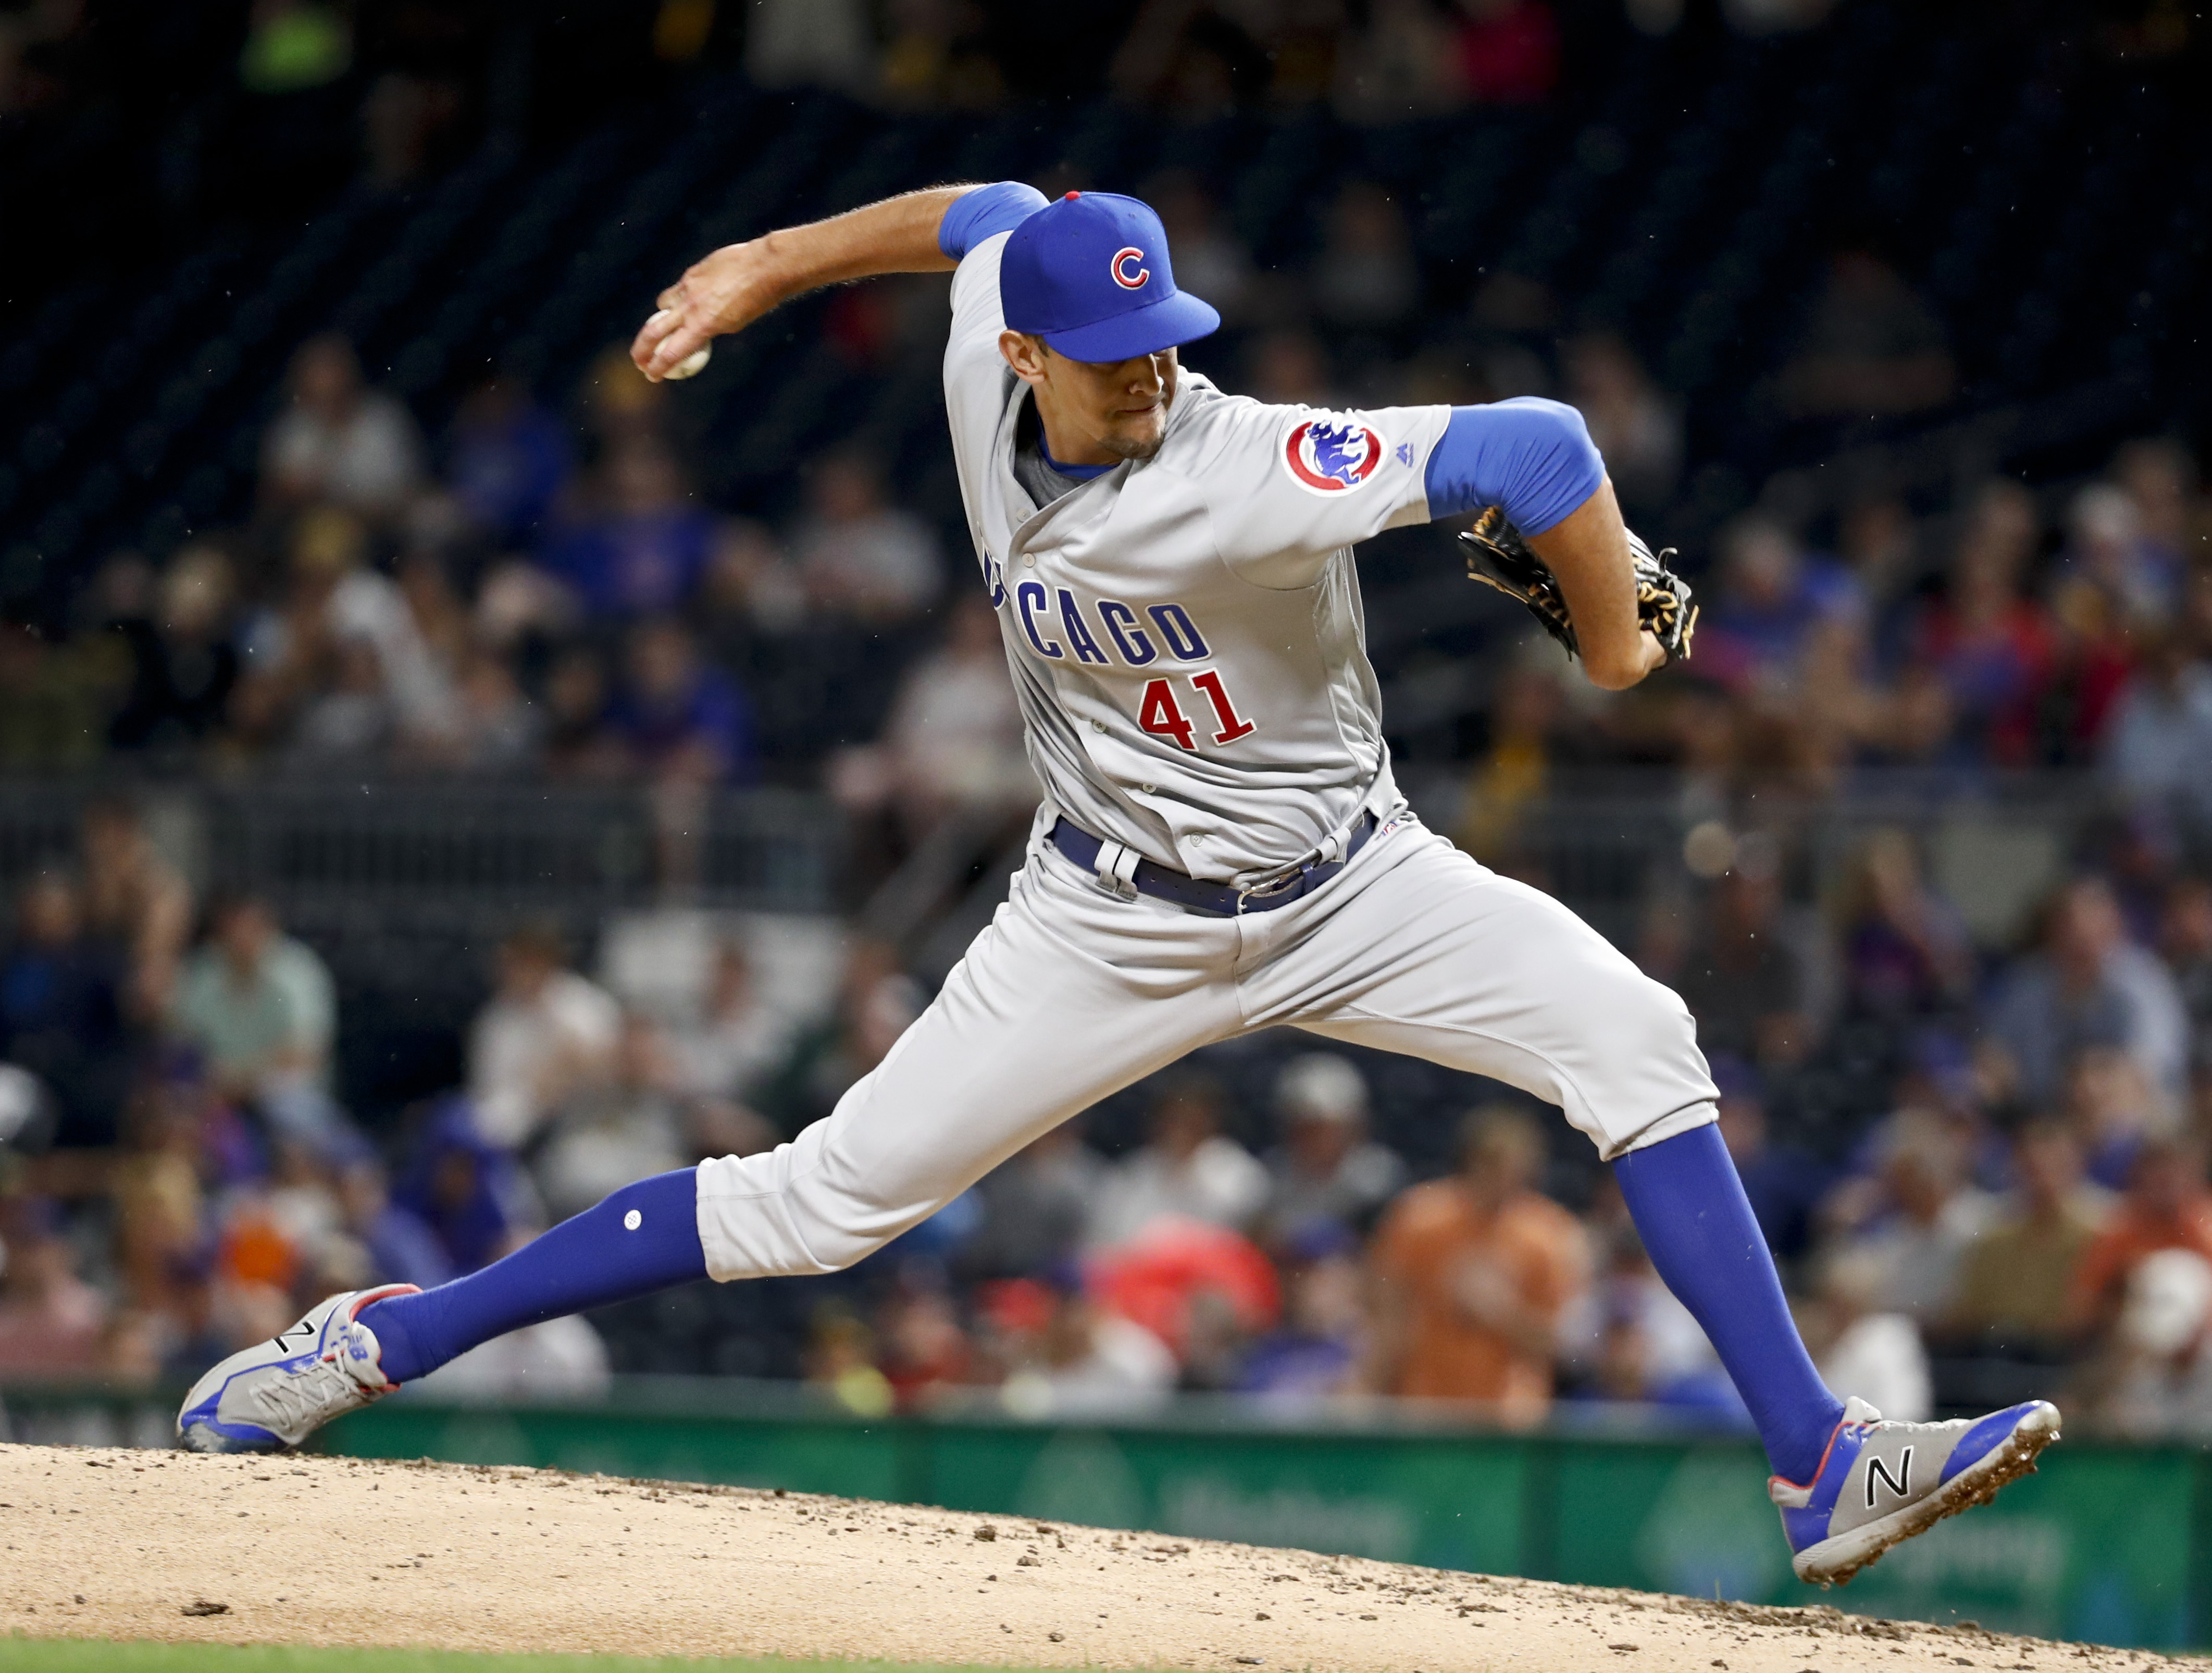 The White Sox and  right-handed reliever Steve Cishek agreed to a one-year, $6 million contract. The agreement includes a club option for 2021.